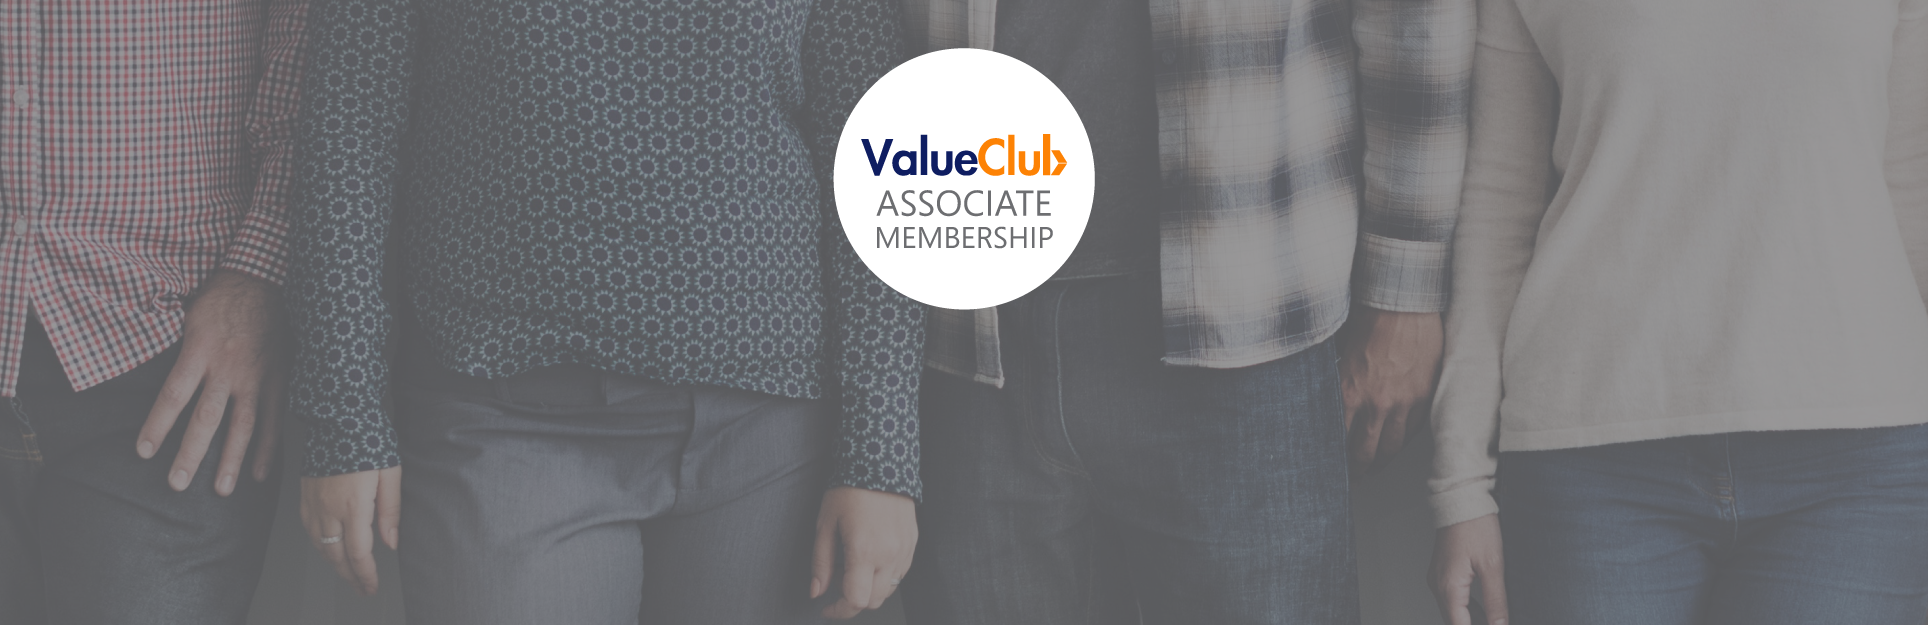 valueclub_banner